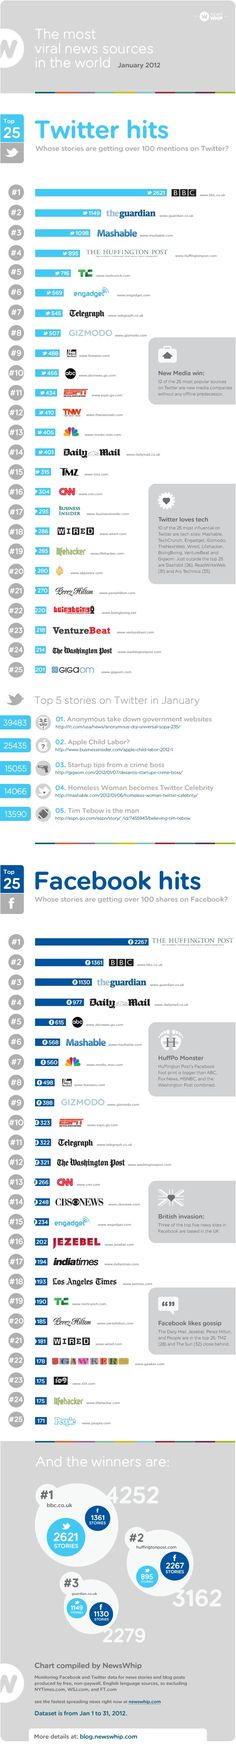 The Most Viral News Sources on Twitter and Facebook